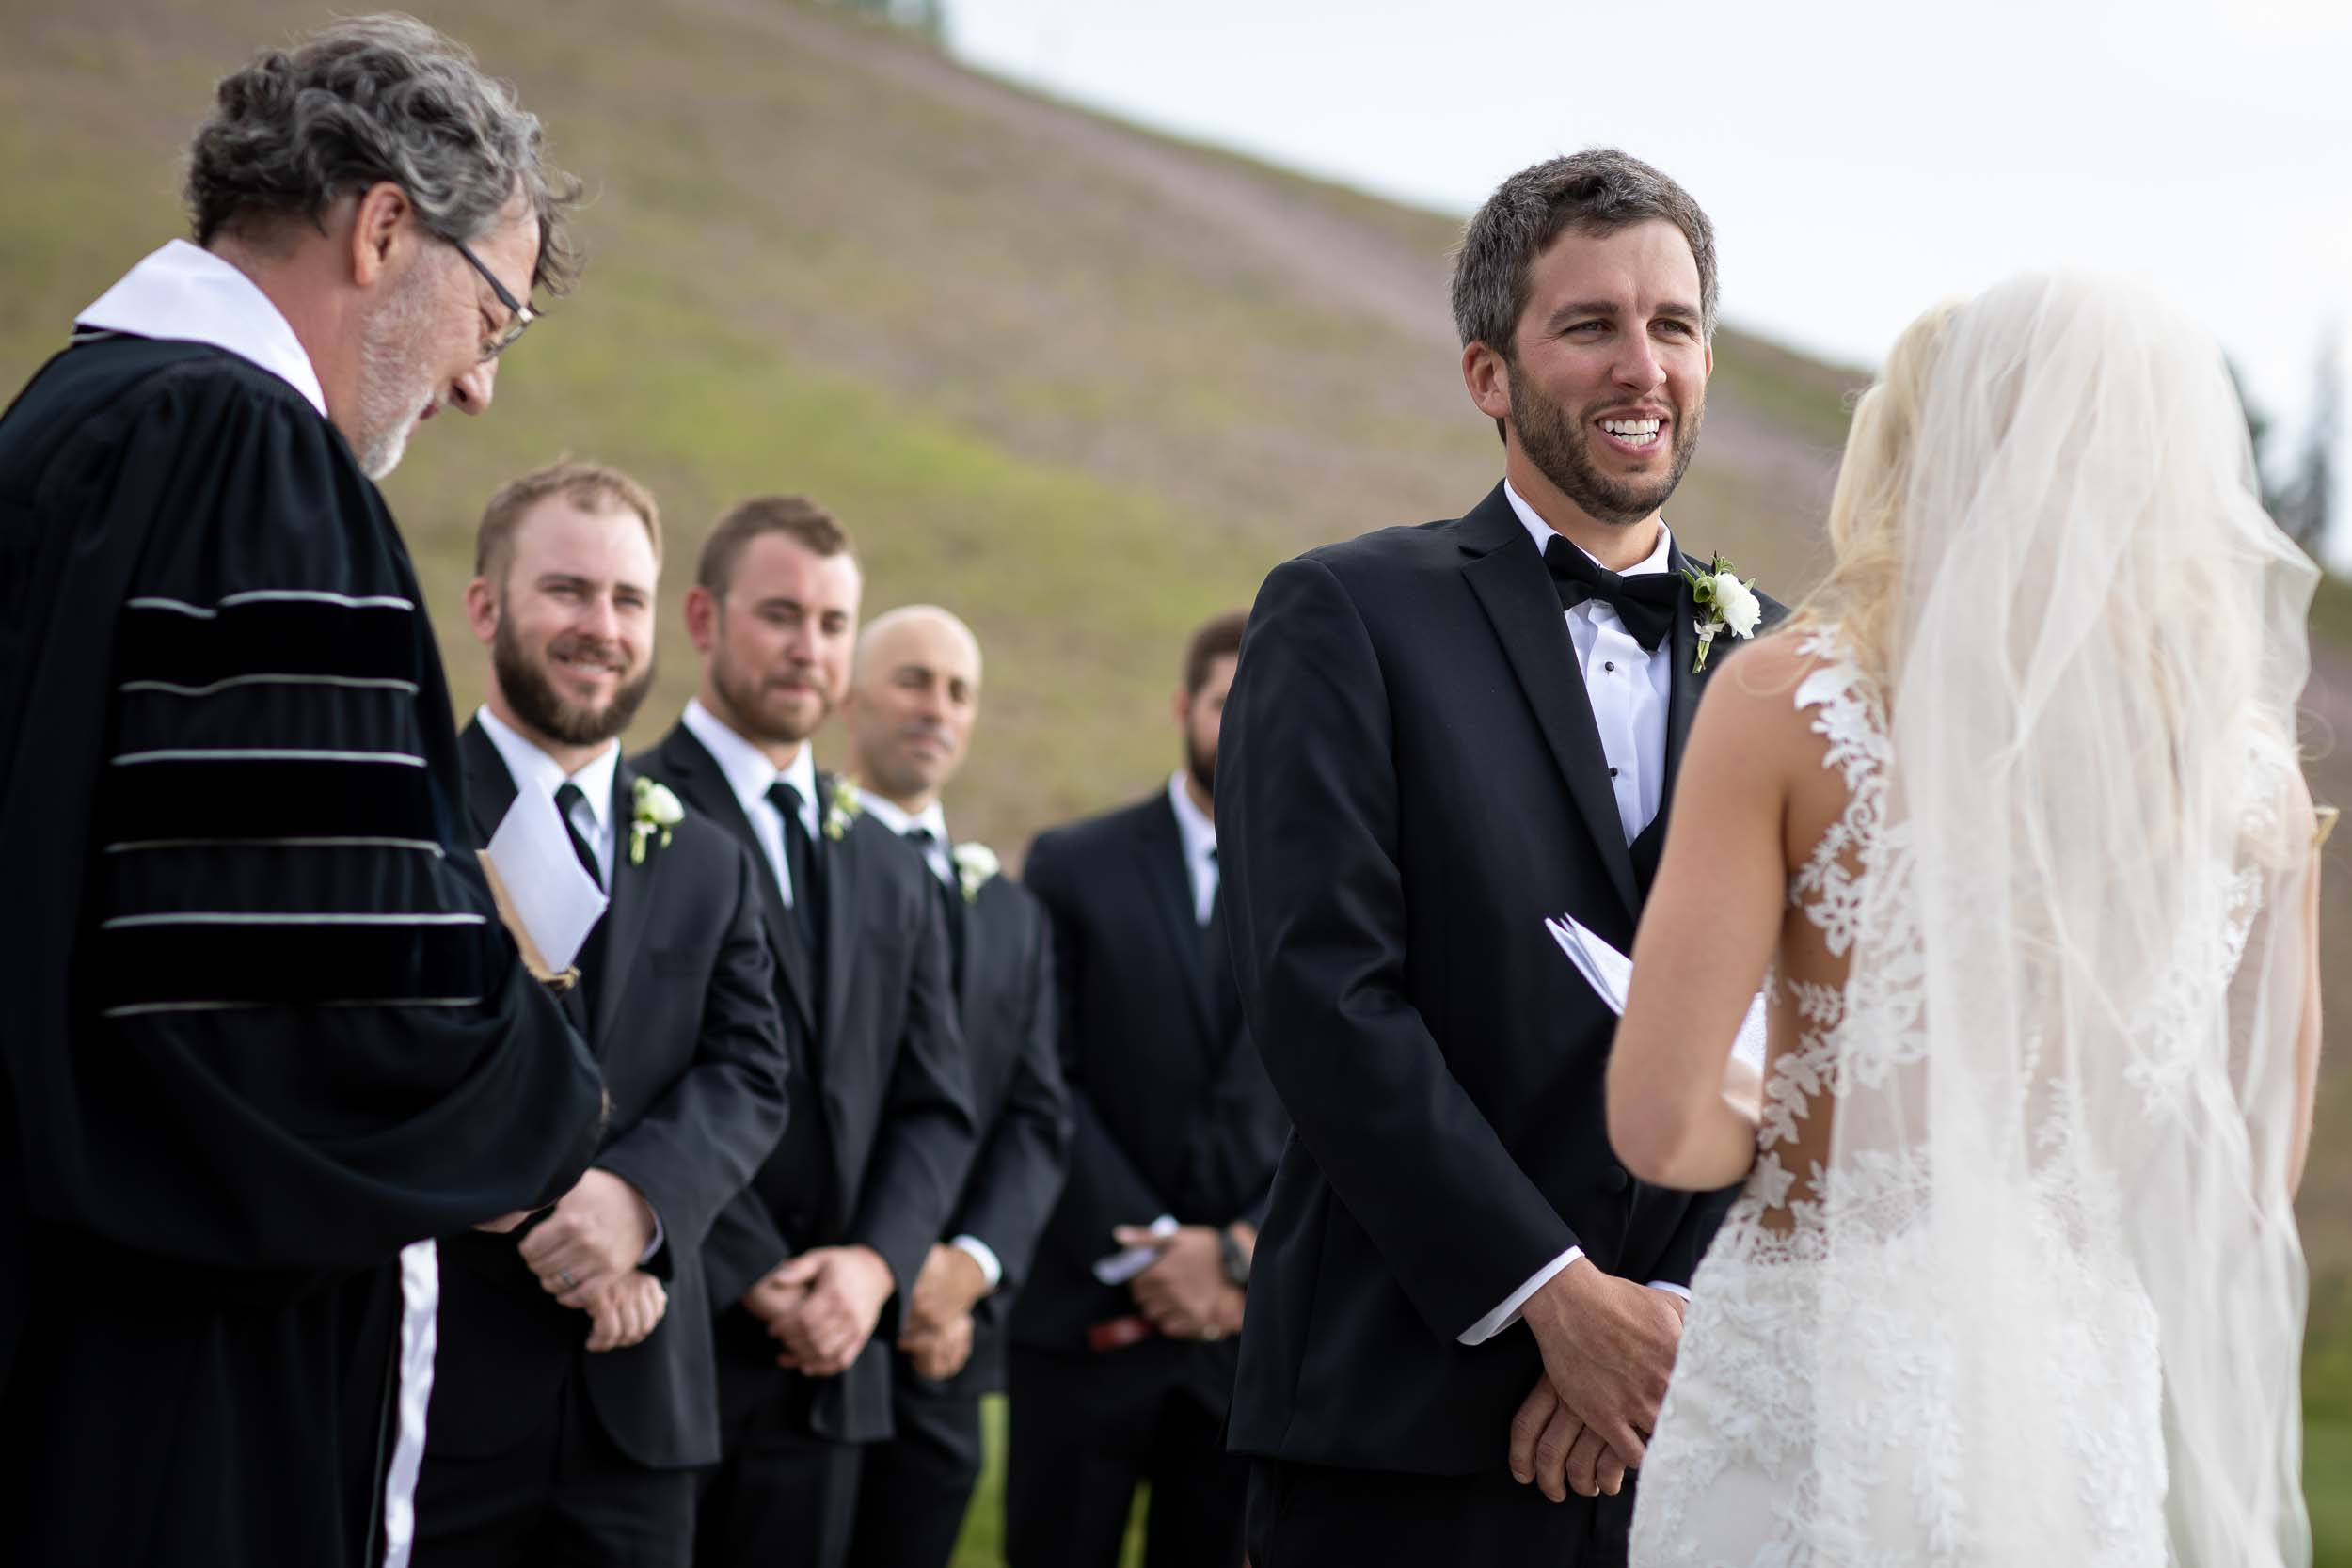 James and Casey's wedding at the San Sophia Overlook and Allreds in Telluride, CO